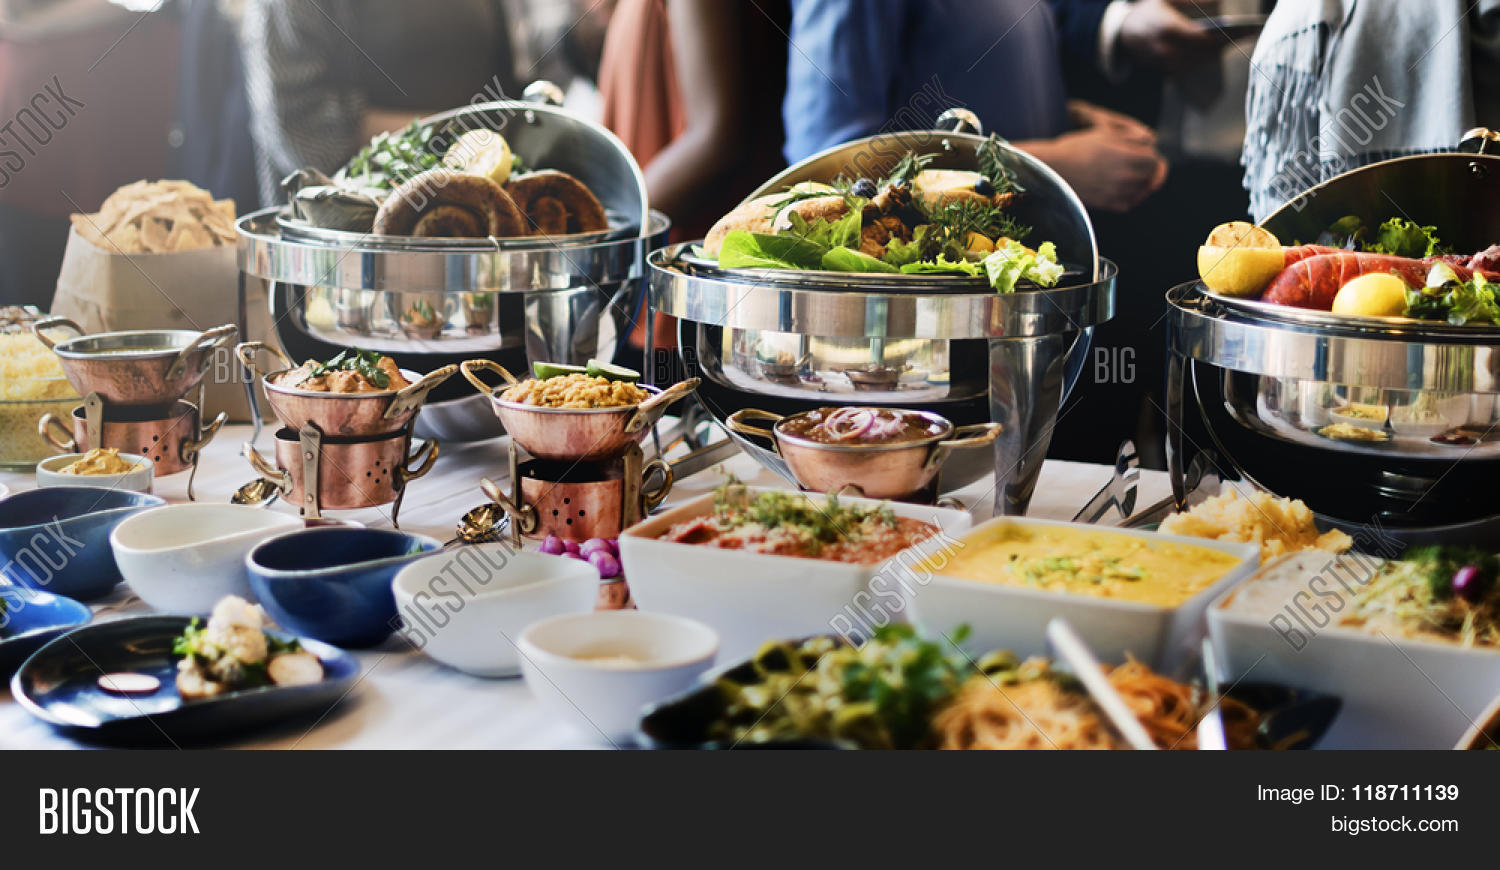 Food Buffet Catering Image & Photo (Free Trial) | Bigstock